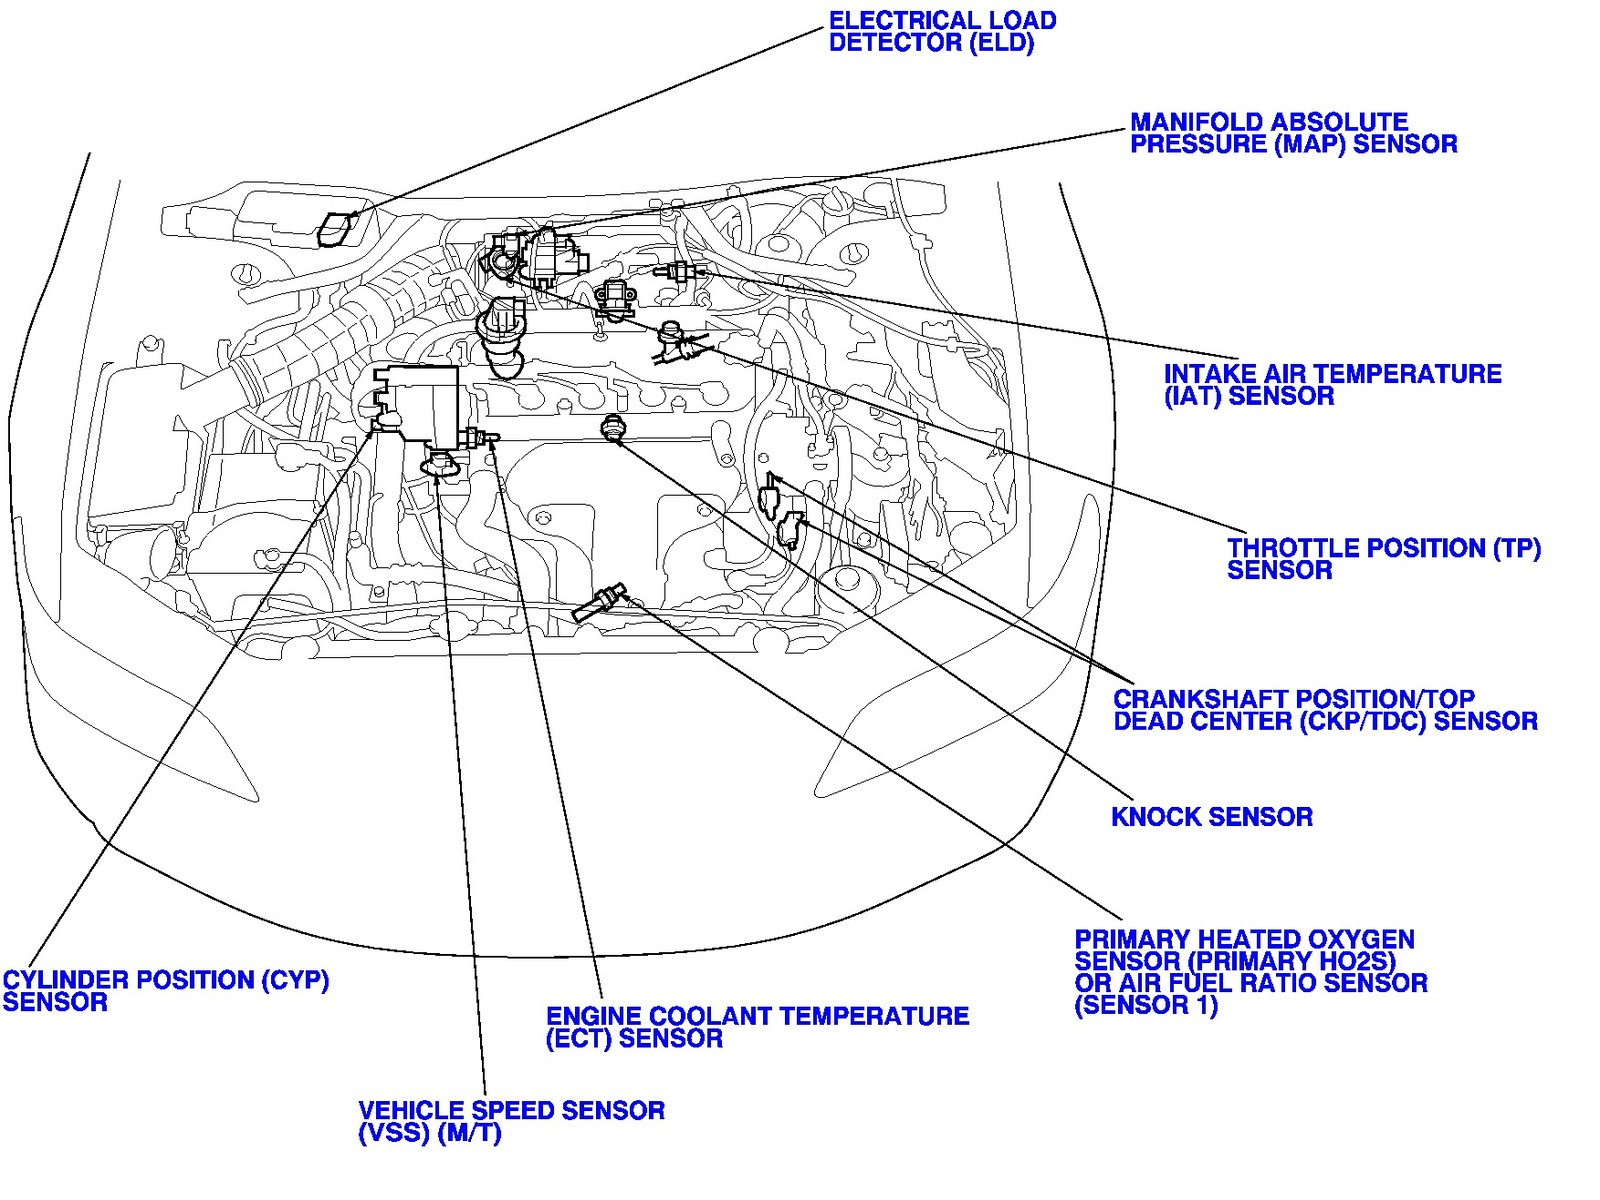 hight resolution of 99 honda accord engine diagram wiring diagrams postsdiagram of honda accord engine wiring diagram article 99